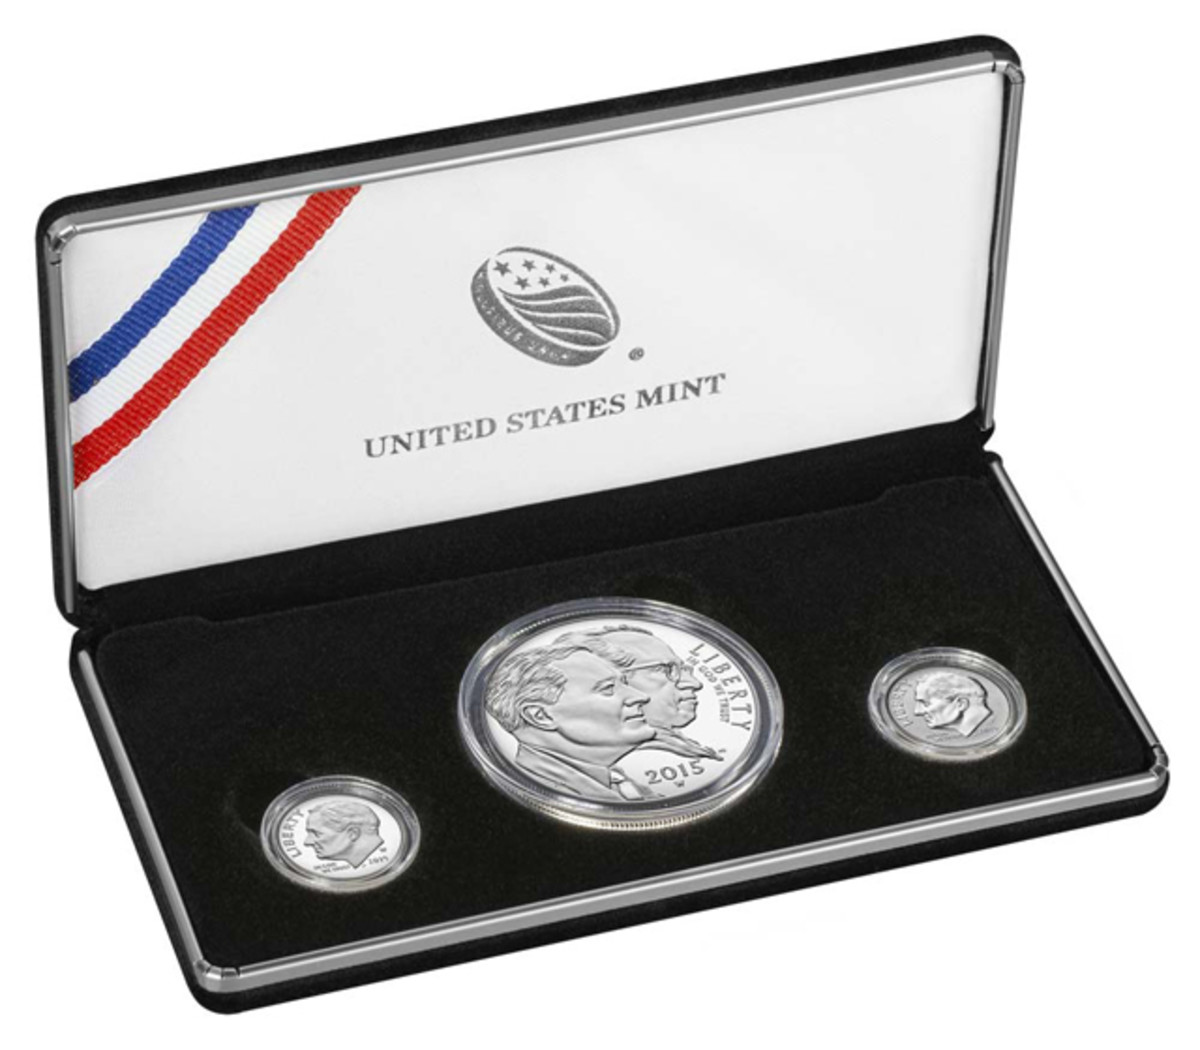 Prices are on the rise for the March of Dimes silver proof sets.